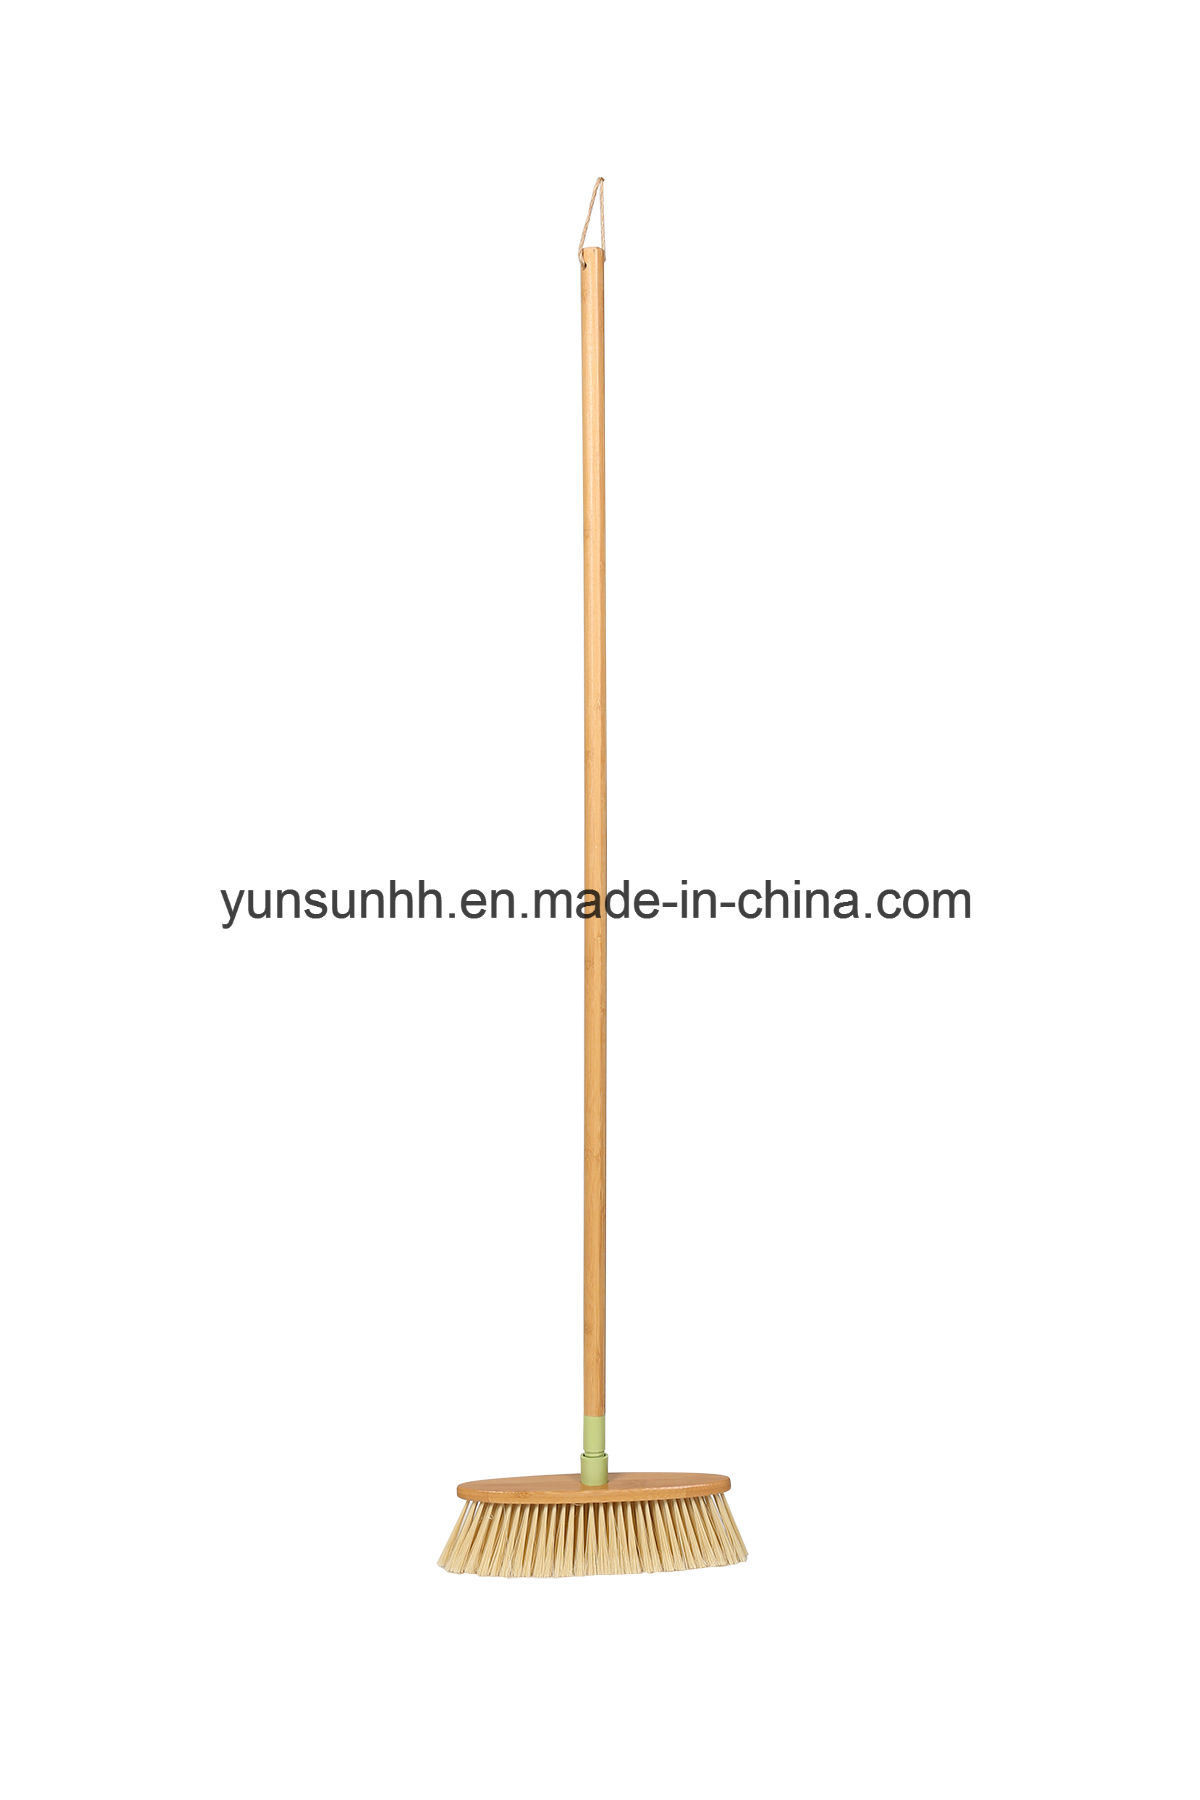 New Bamboo Broom/Floor Cleaning Broom/Cleaning/Scrubbing Broom